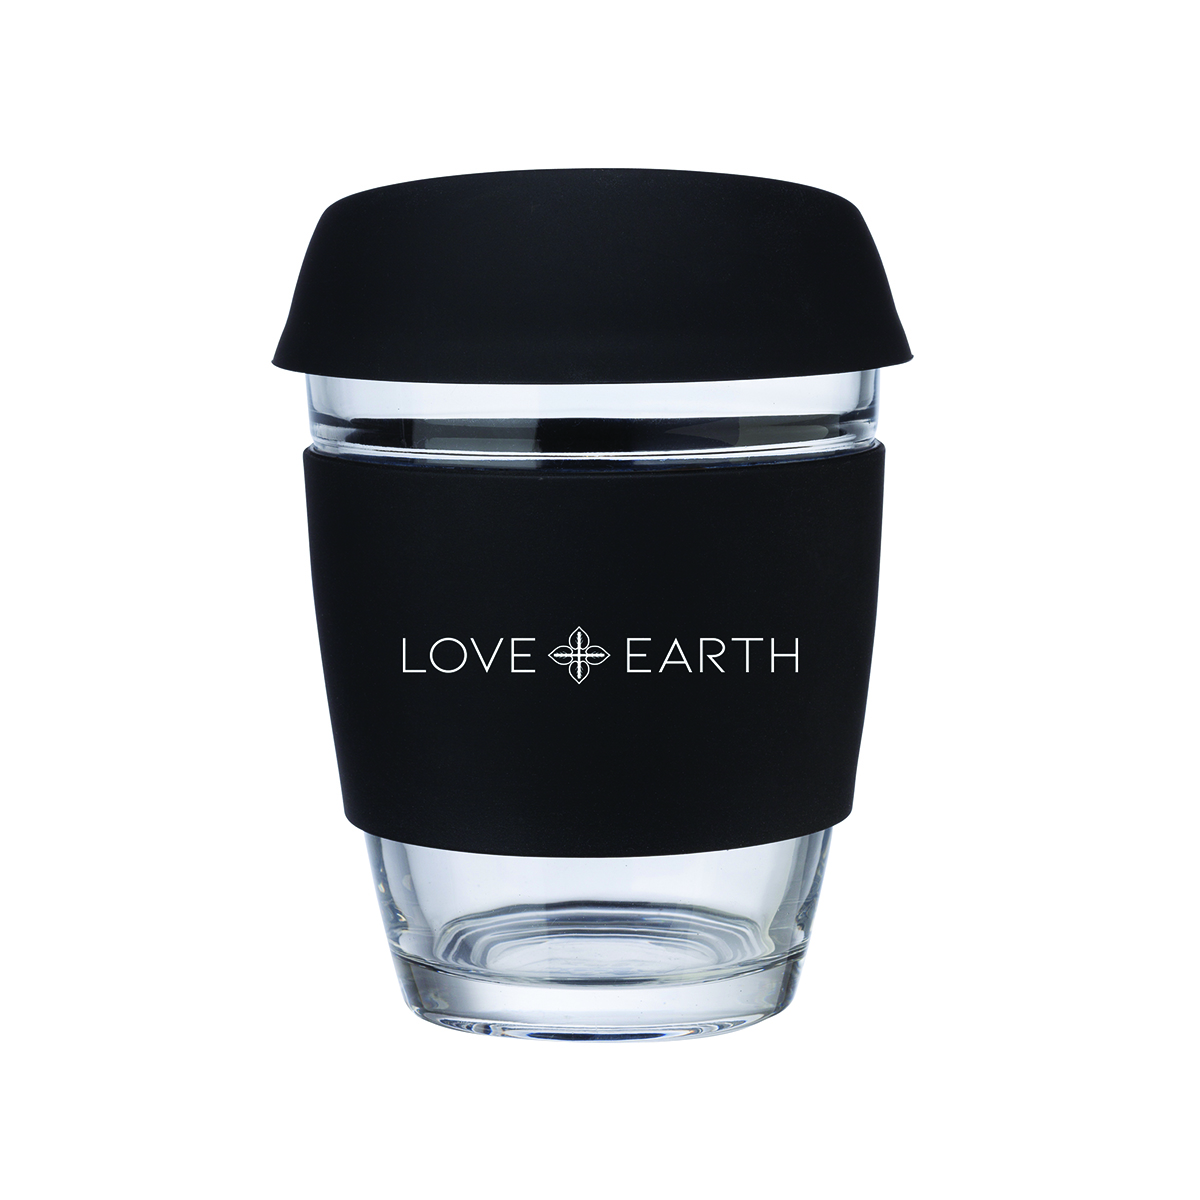 LOVE+EARTH 12oz. GLASS COFFEE MUG WITH SILICONE GRIP